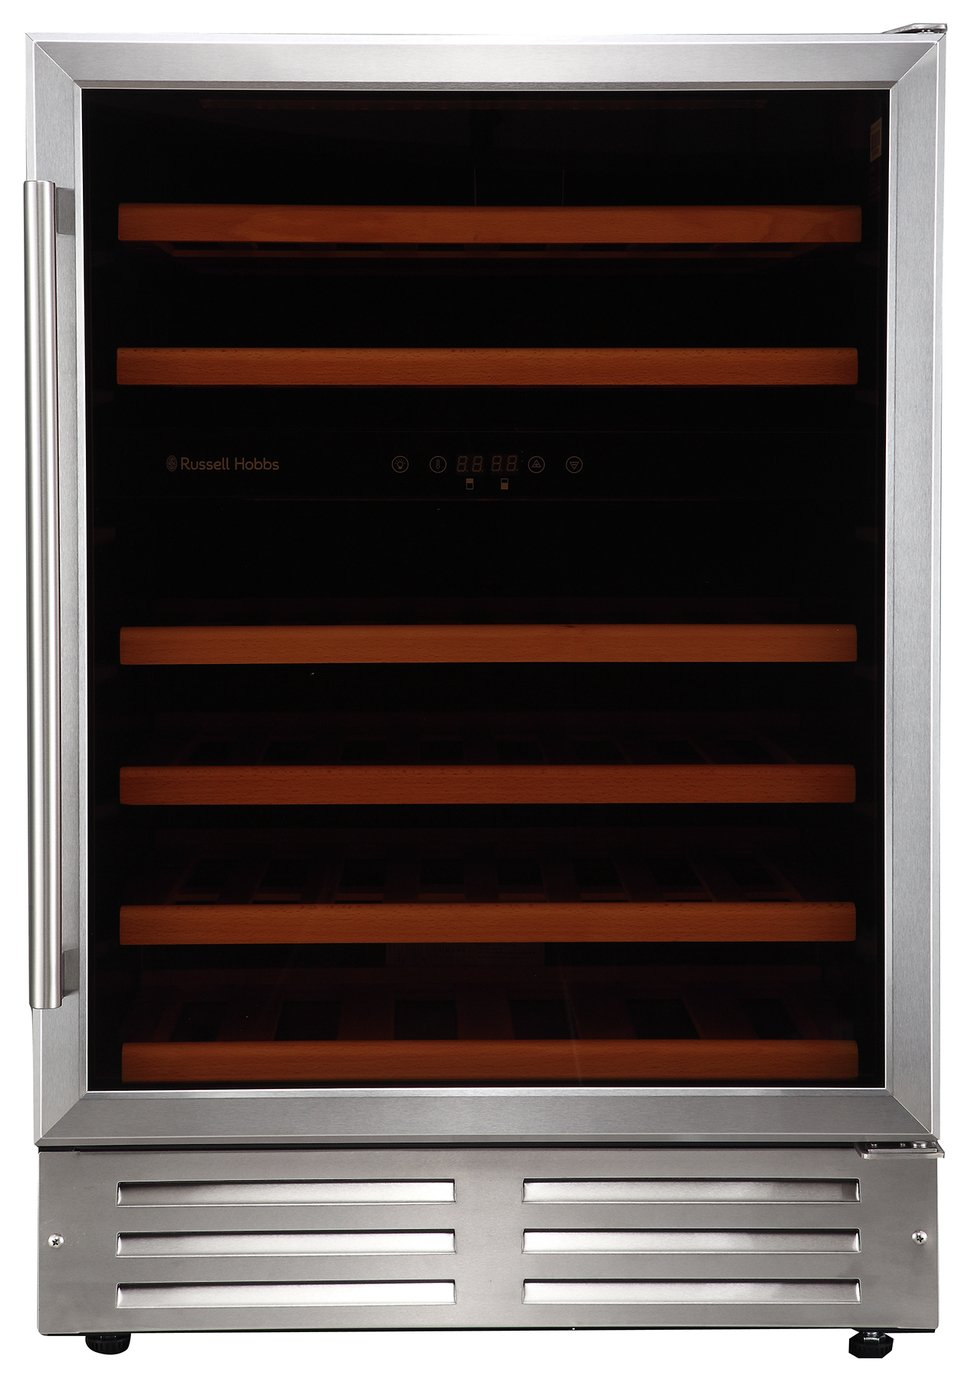 Russell Hobbs 46 Bottle Wine Cooler - Stainless Steel.